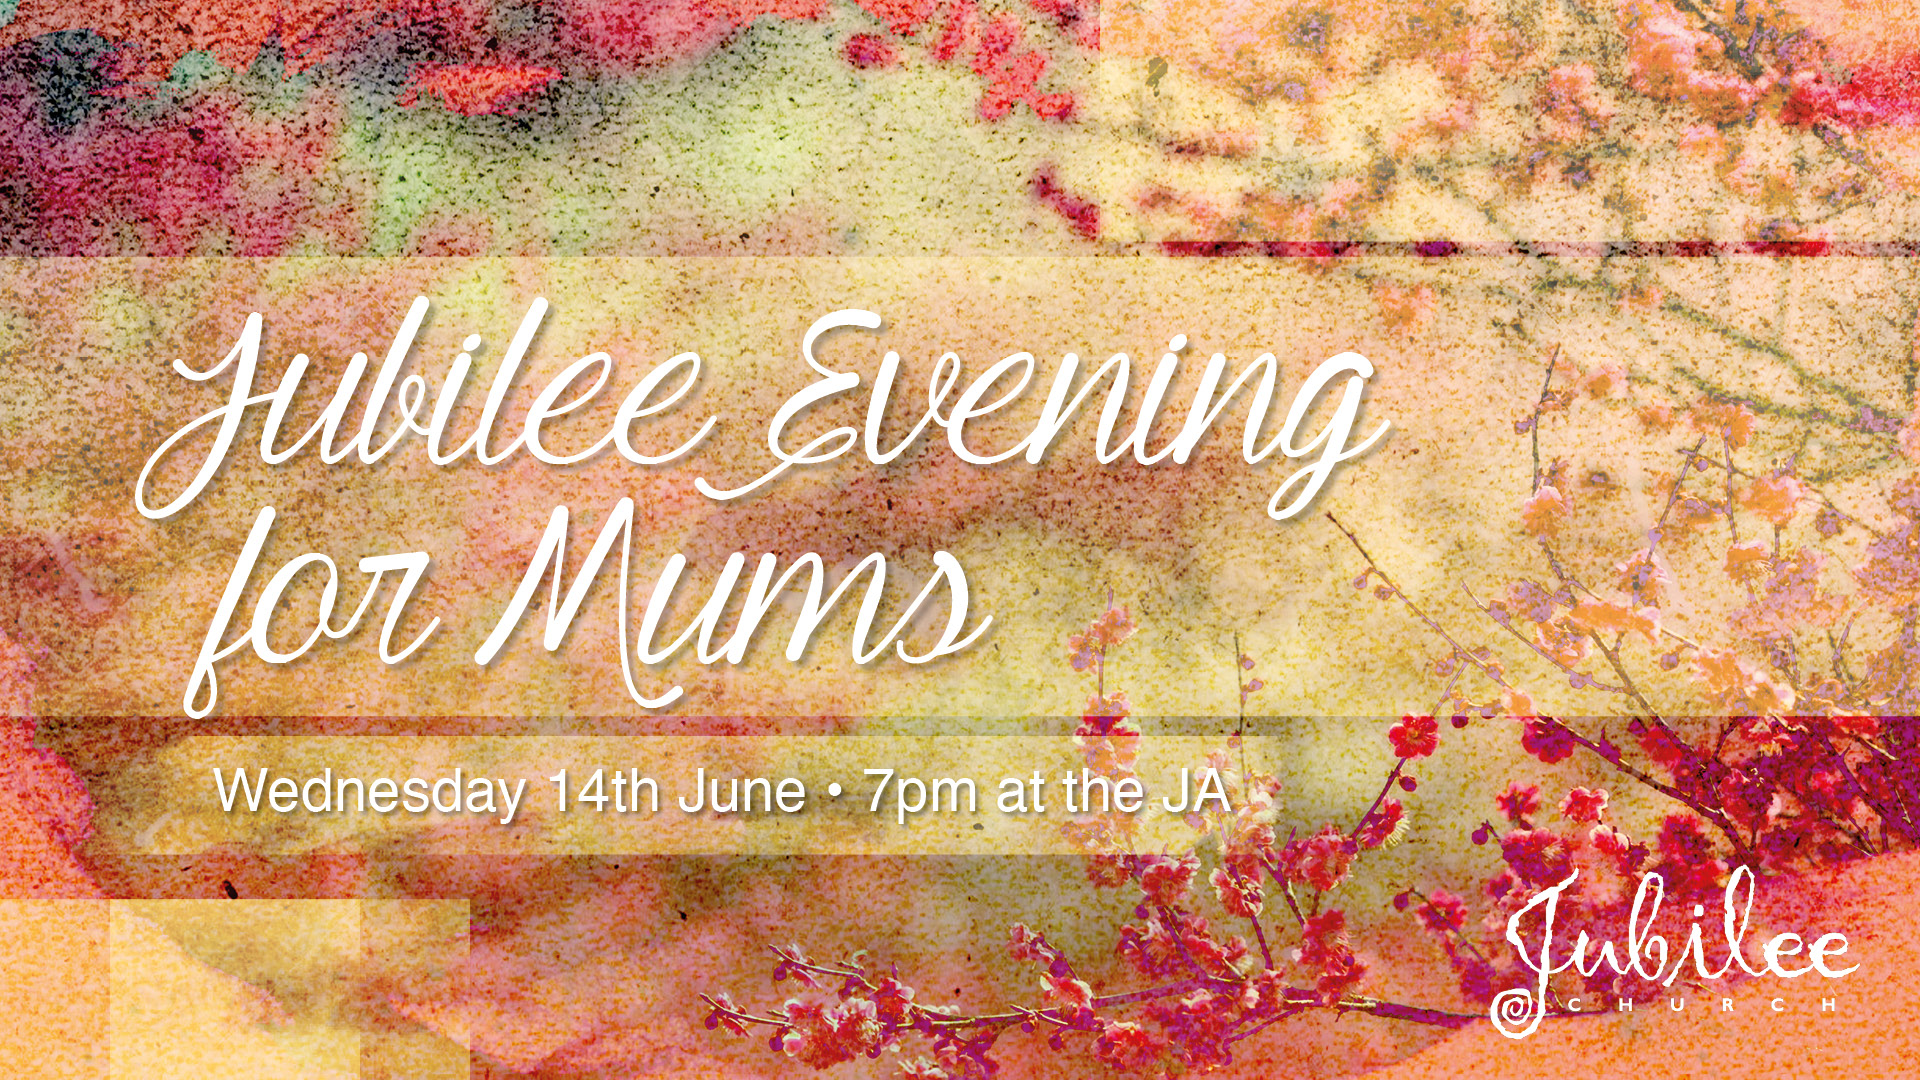 Jubilee Evening for Mothers